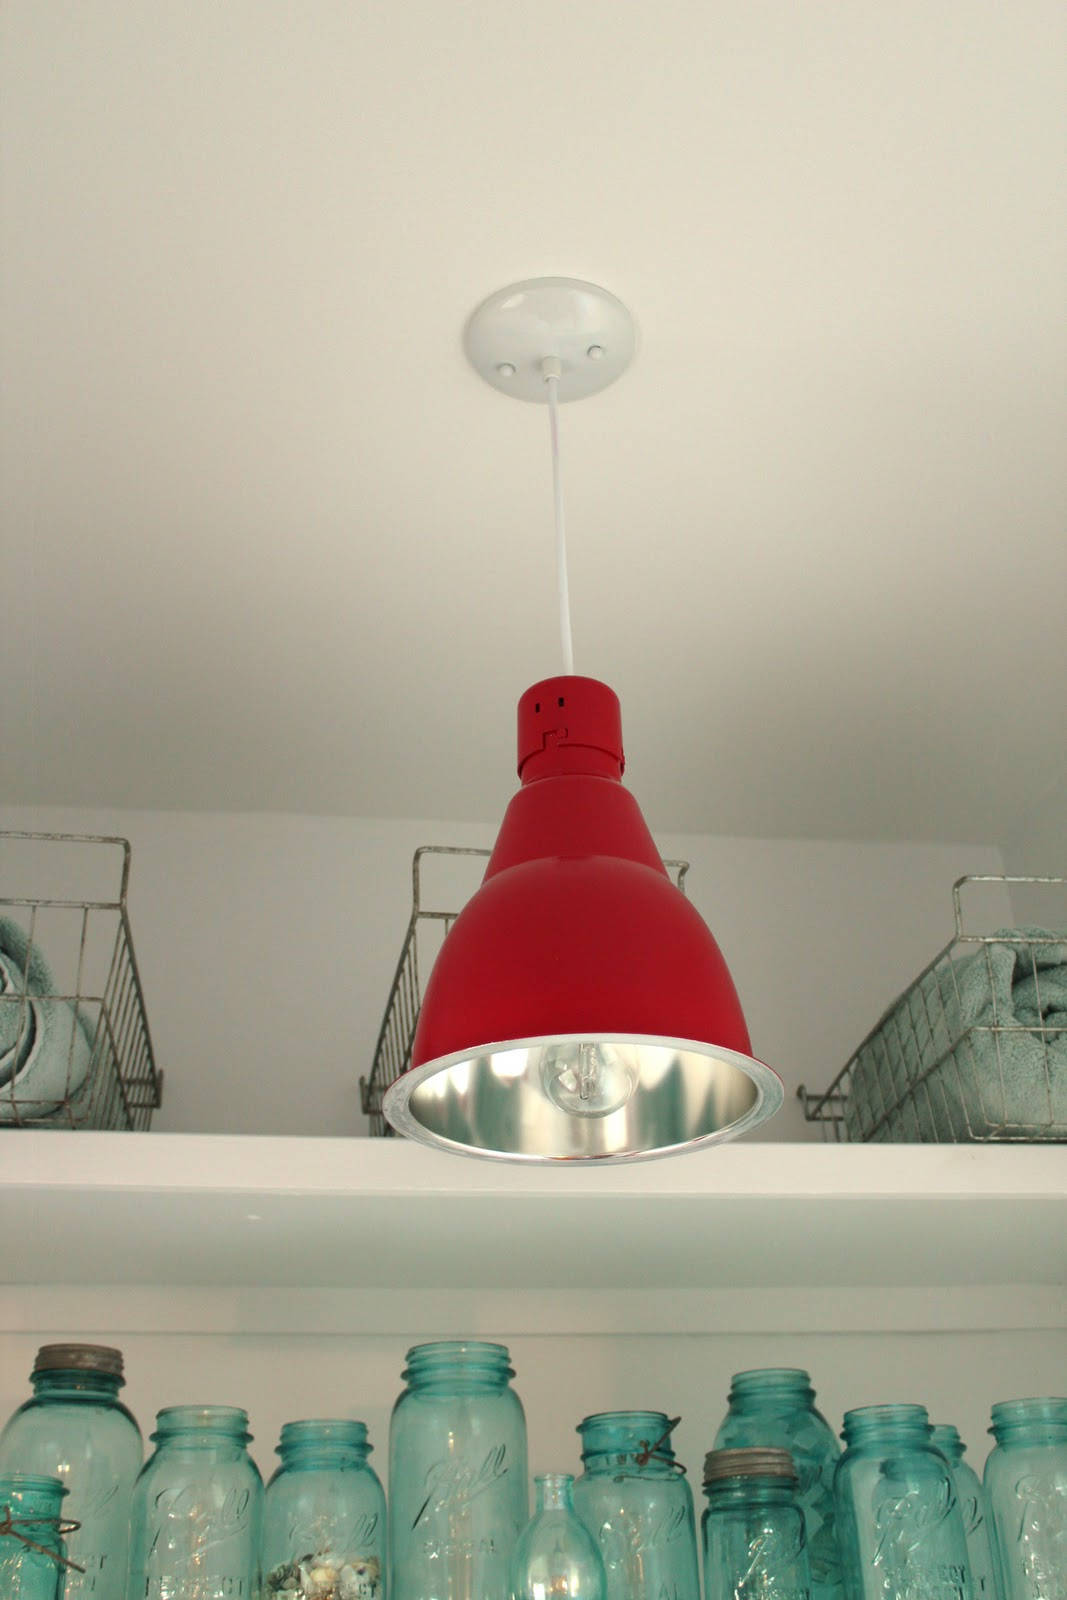 west elm, industrial, pendant lights, salvaged, red pendant light, industrial hanging lighting, bathroom lights